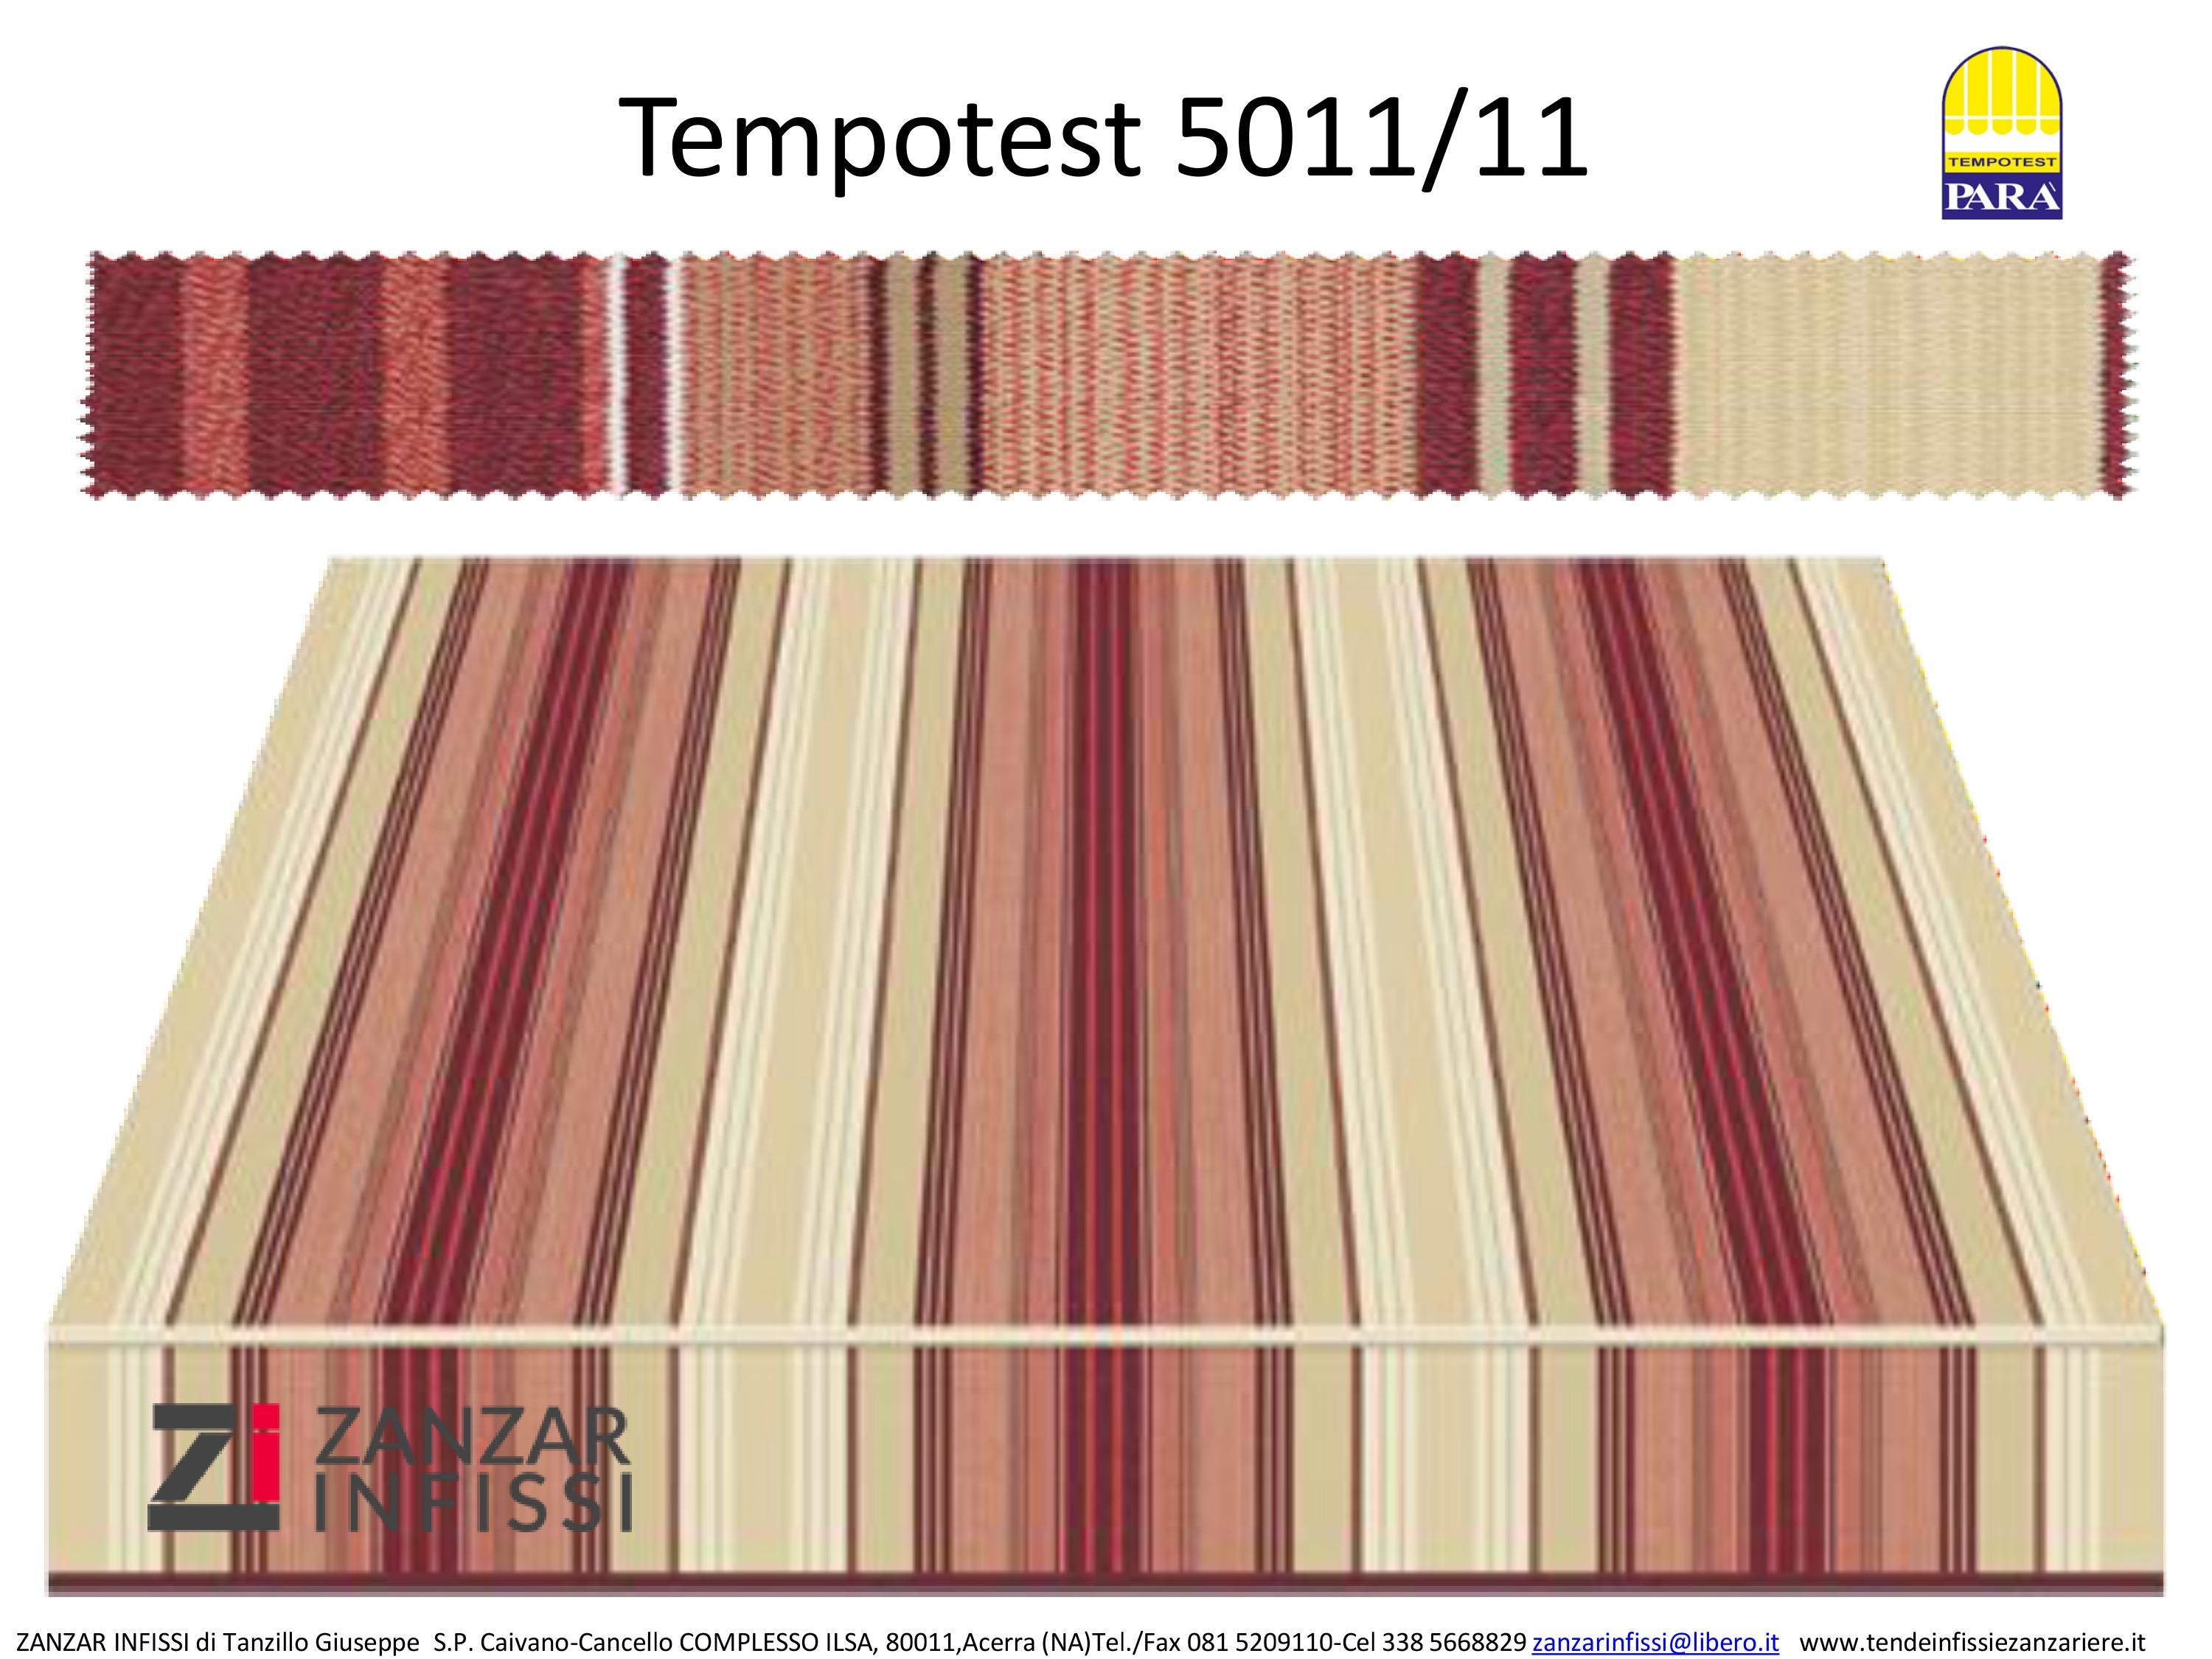 Tempotest 5011/11